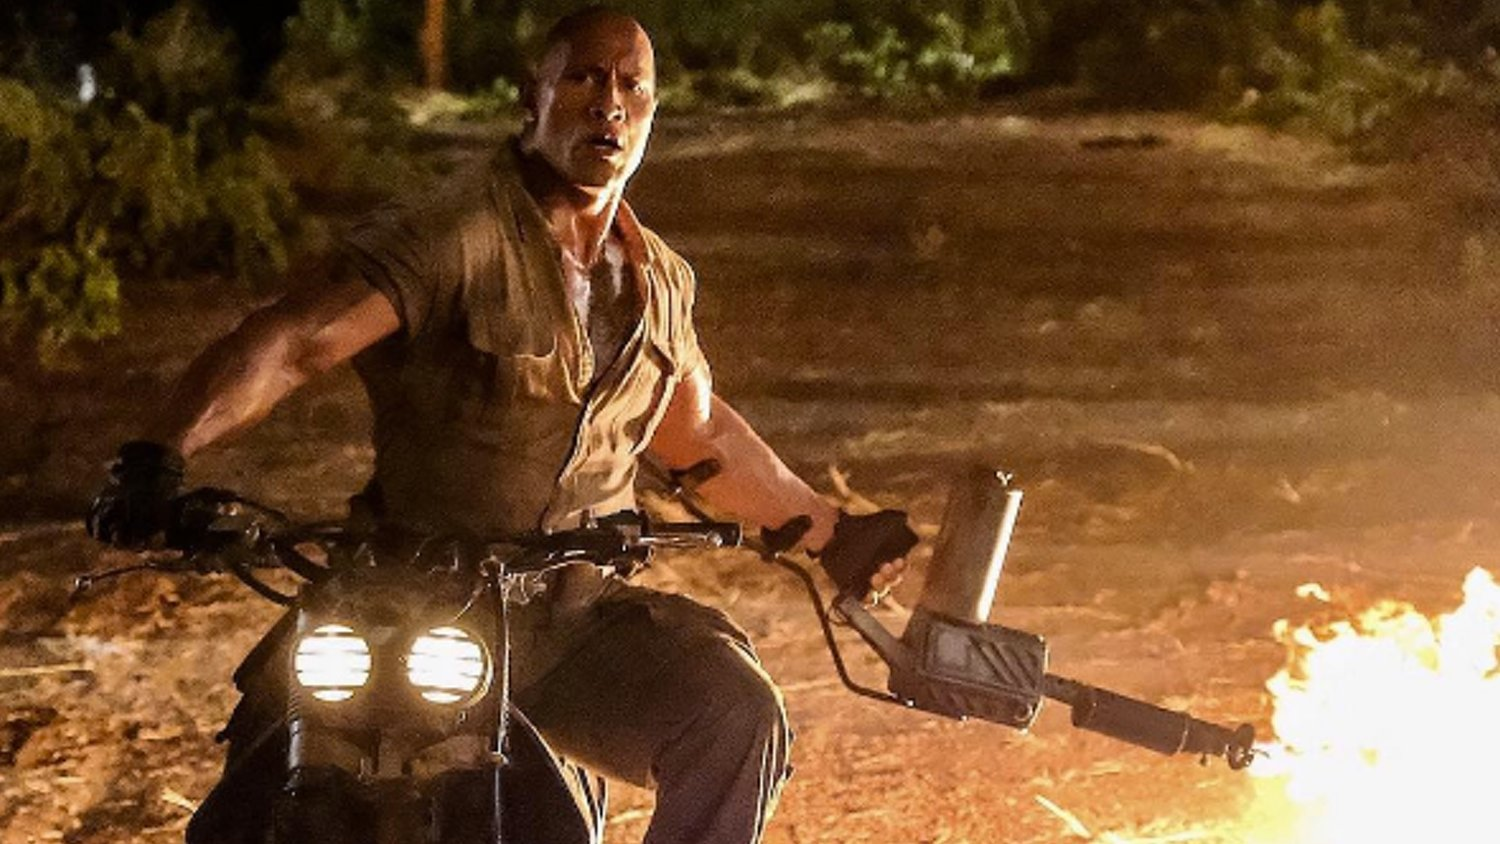 Is The New Jumanji Film Inspired By The Most Dangerous Game